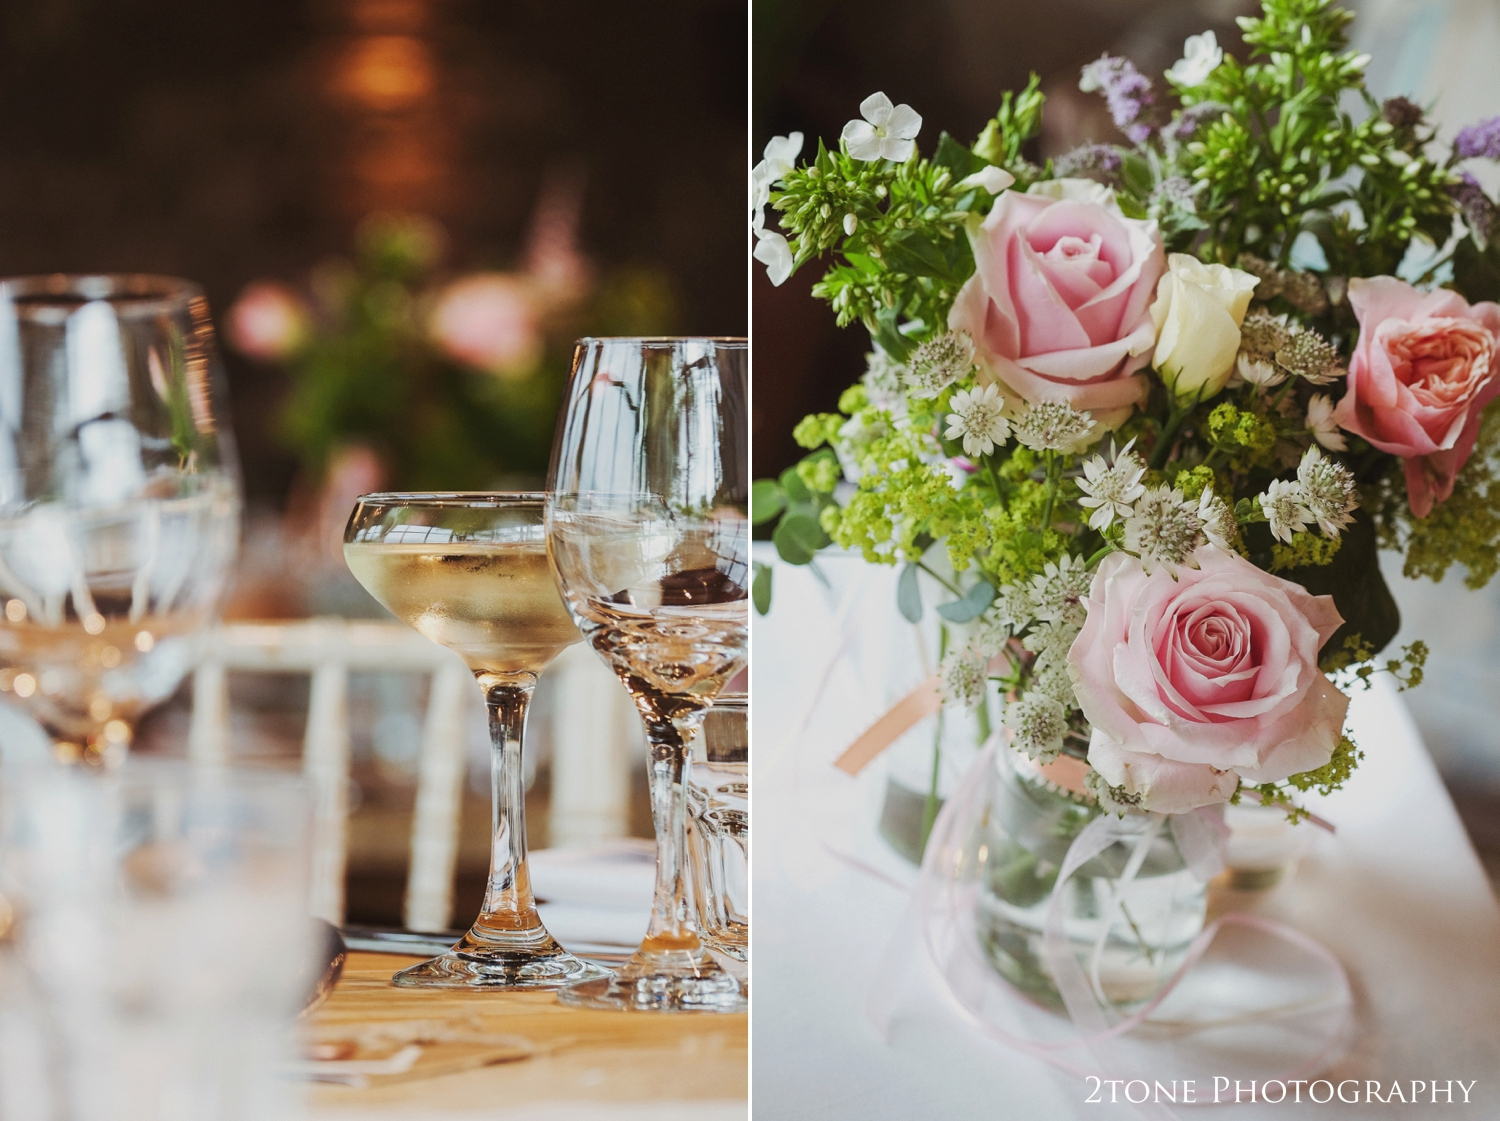 Pretty blooms tied with ribbon and lace adorn the tables